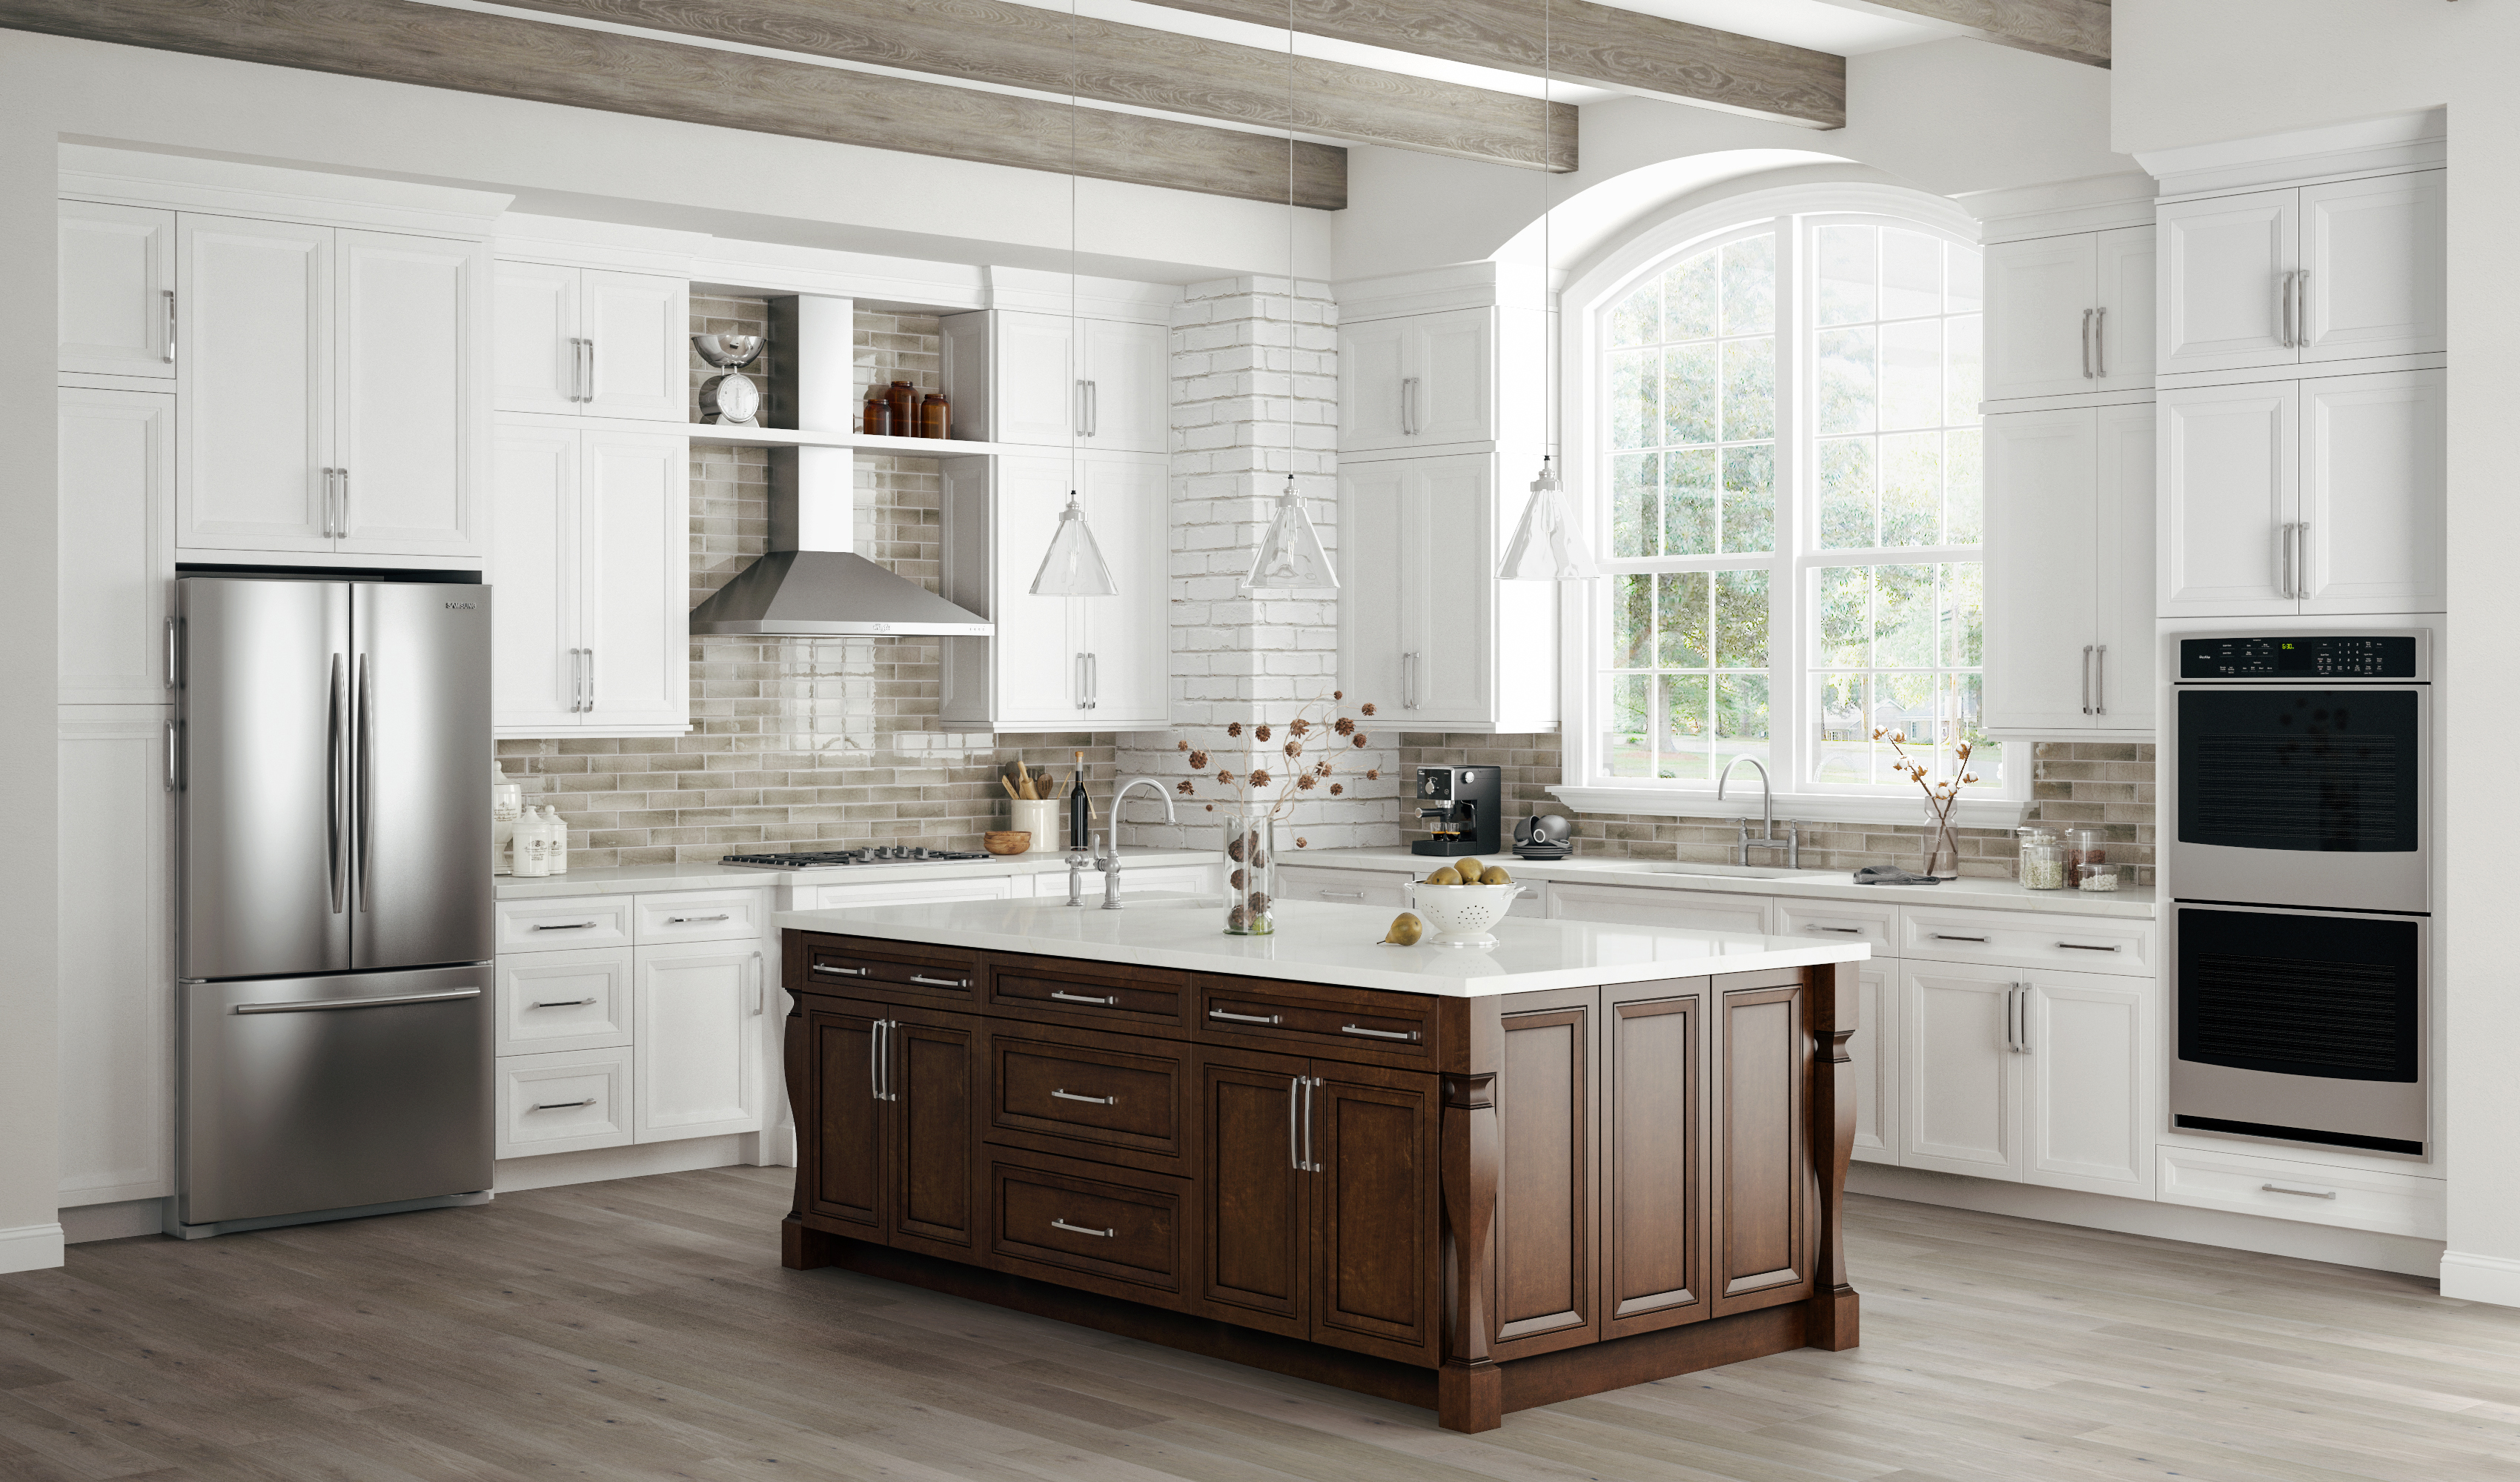 Gallery   PCS   Professional Cabinet Solutions   Designer Kitchen Cabinetry